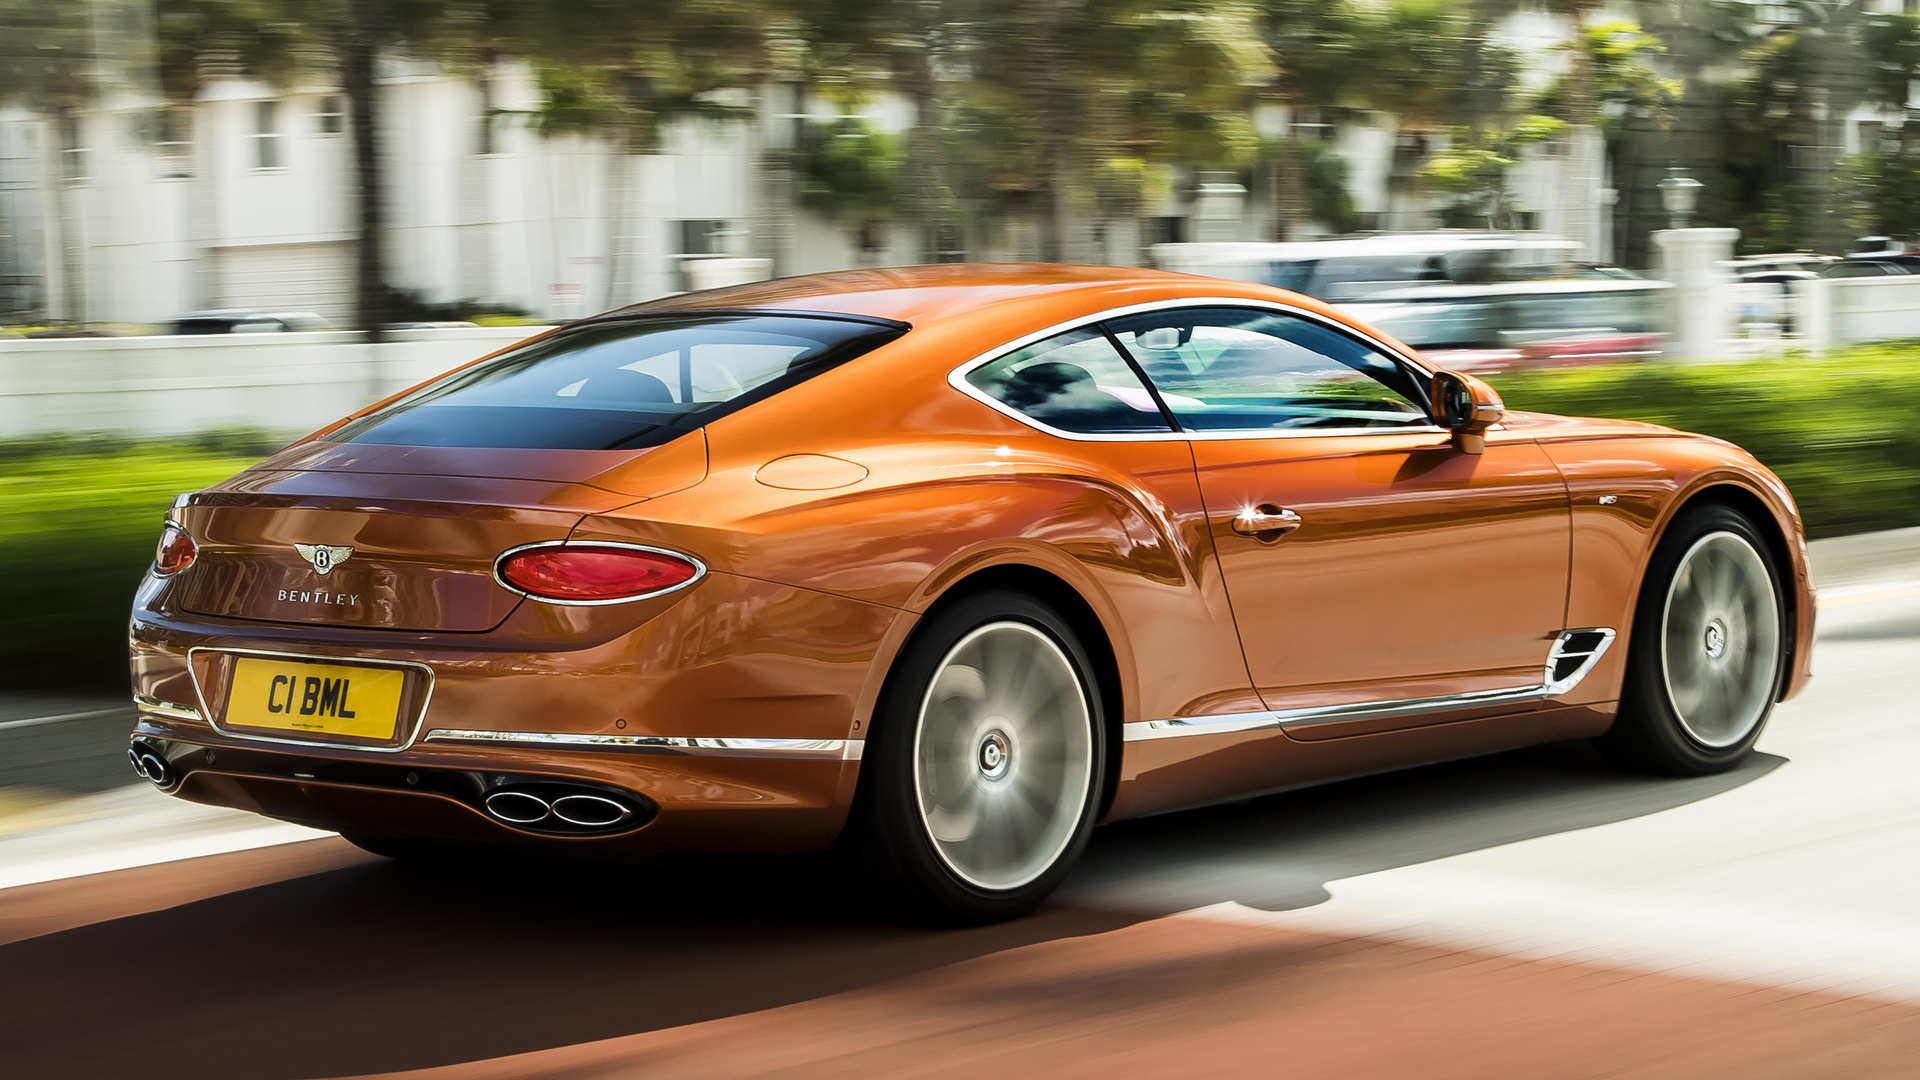 Ford New Cars >> 2019 Bentley Continental GT V8 - Wallpapers and HD Images ...